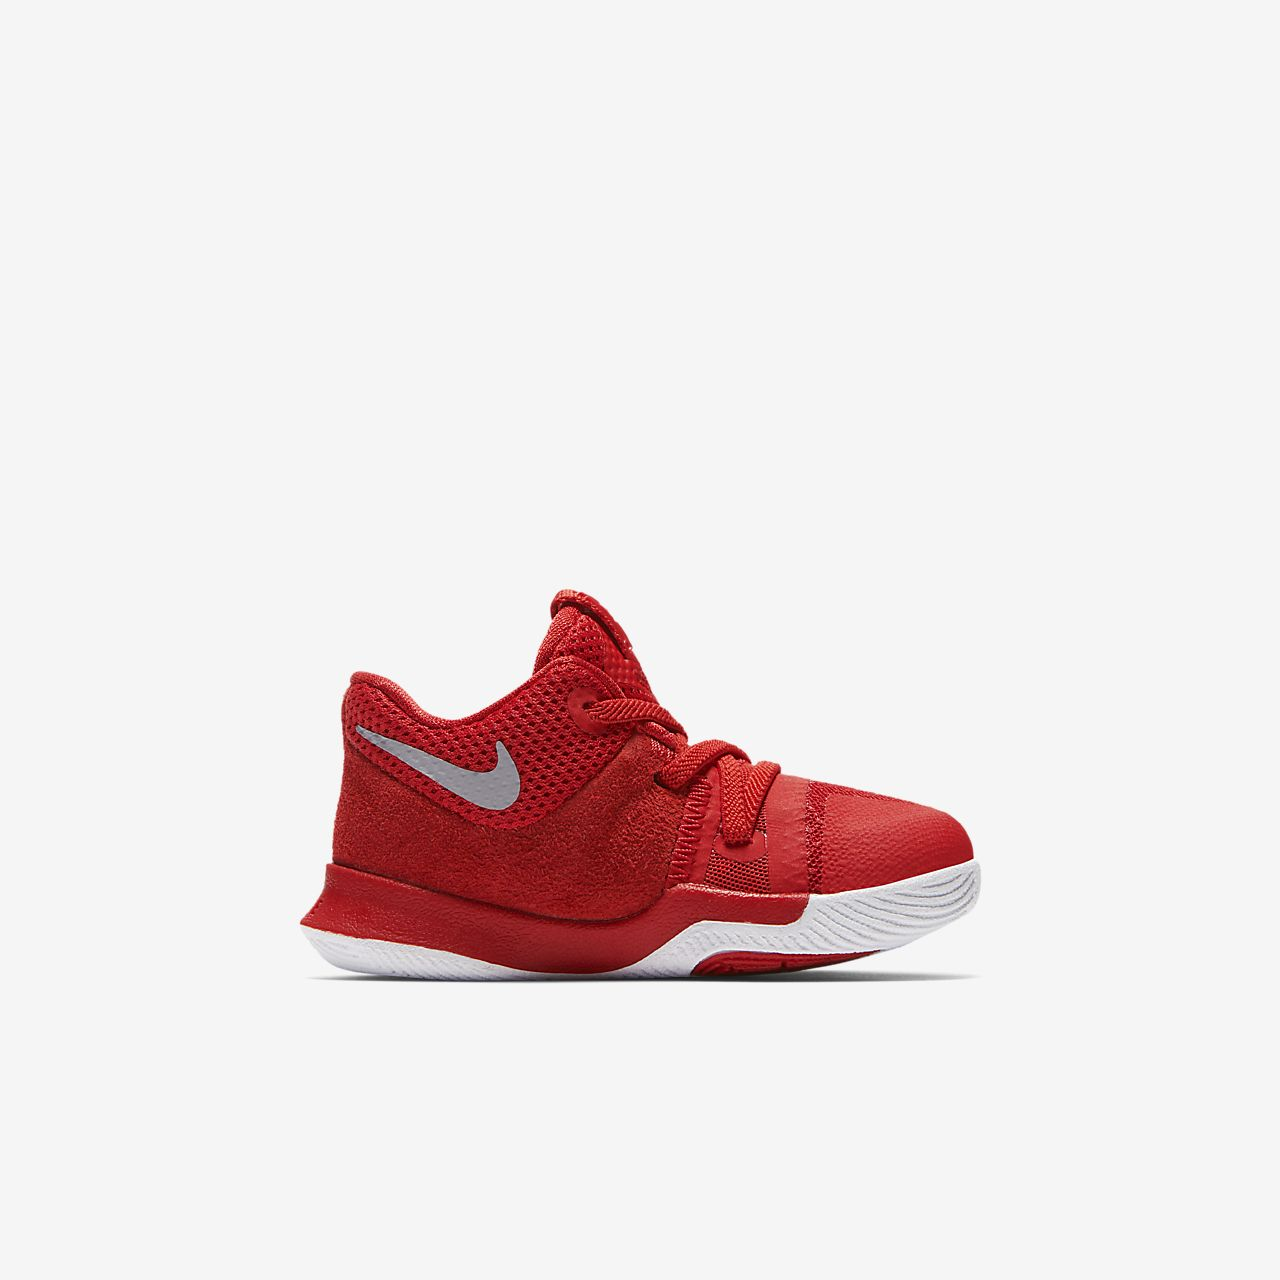 ... Kyrie 3 Infant/Toddler Shoe